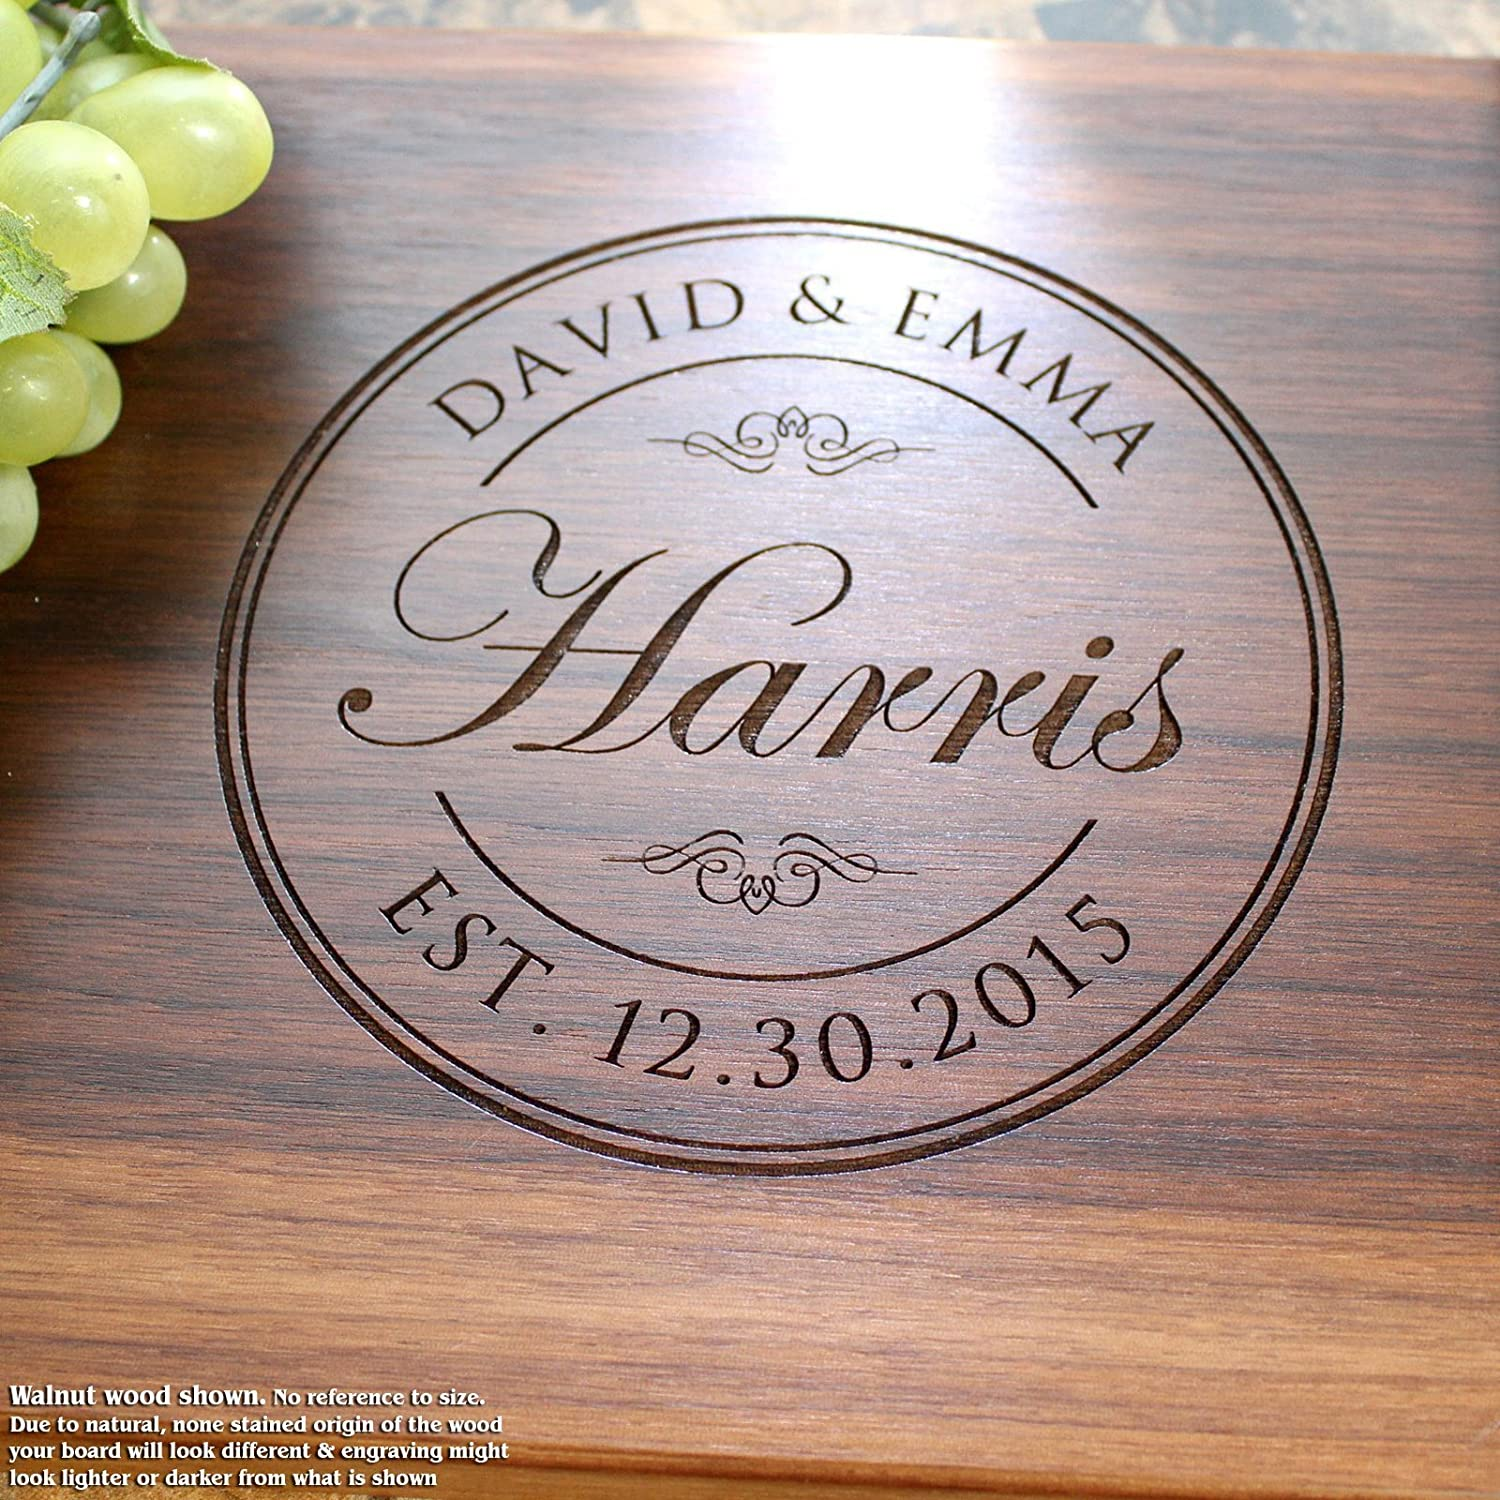 Personalized Cutting Board, Custom Keepsake, Engraved Serving Cheese Plate, Wedding, Anniversary, Engagement, Housewarming, Birthday, Corporate, Closing Gift #001